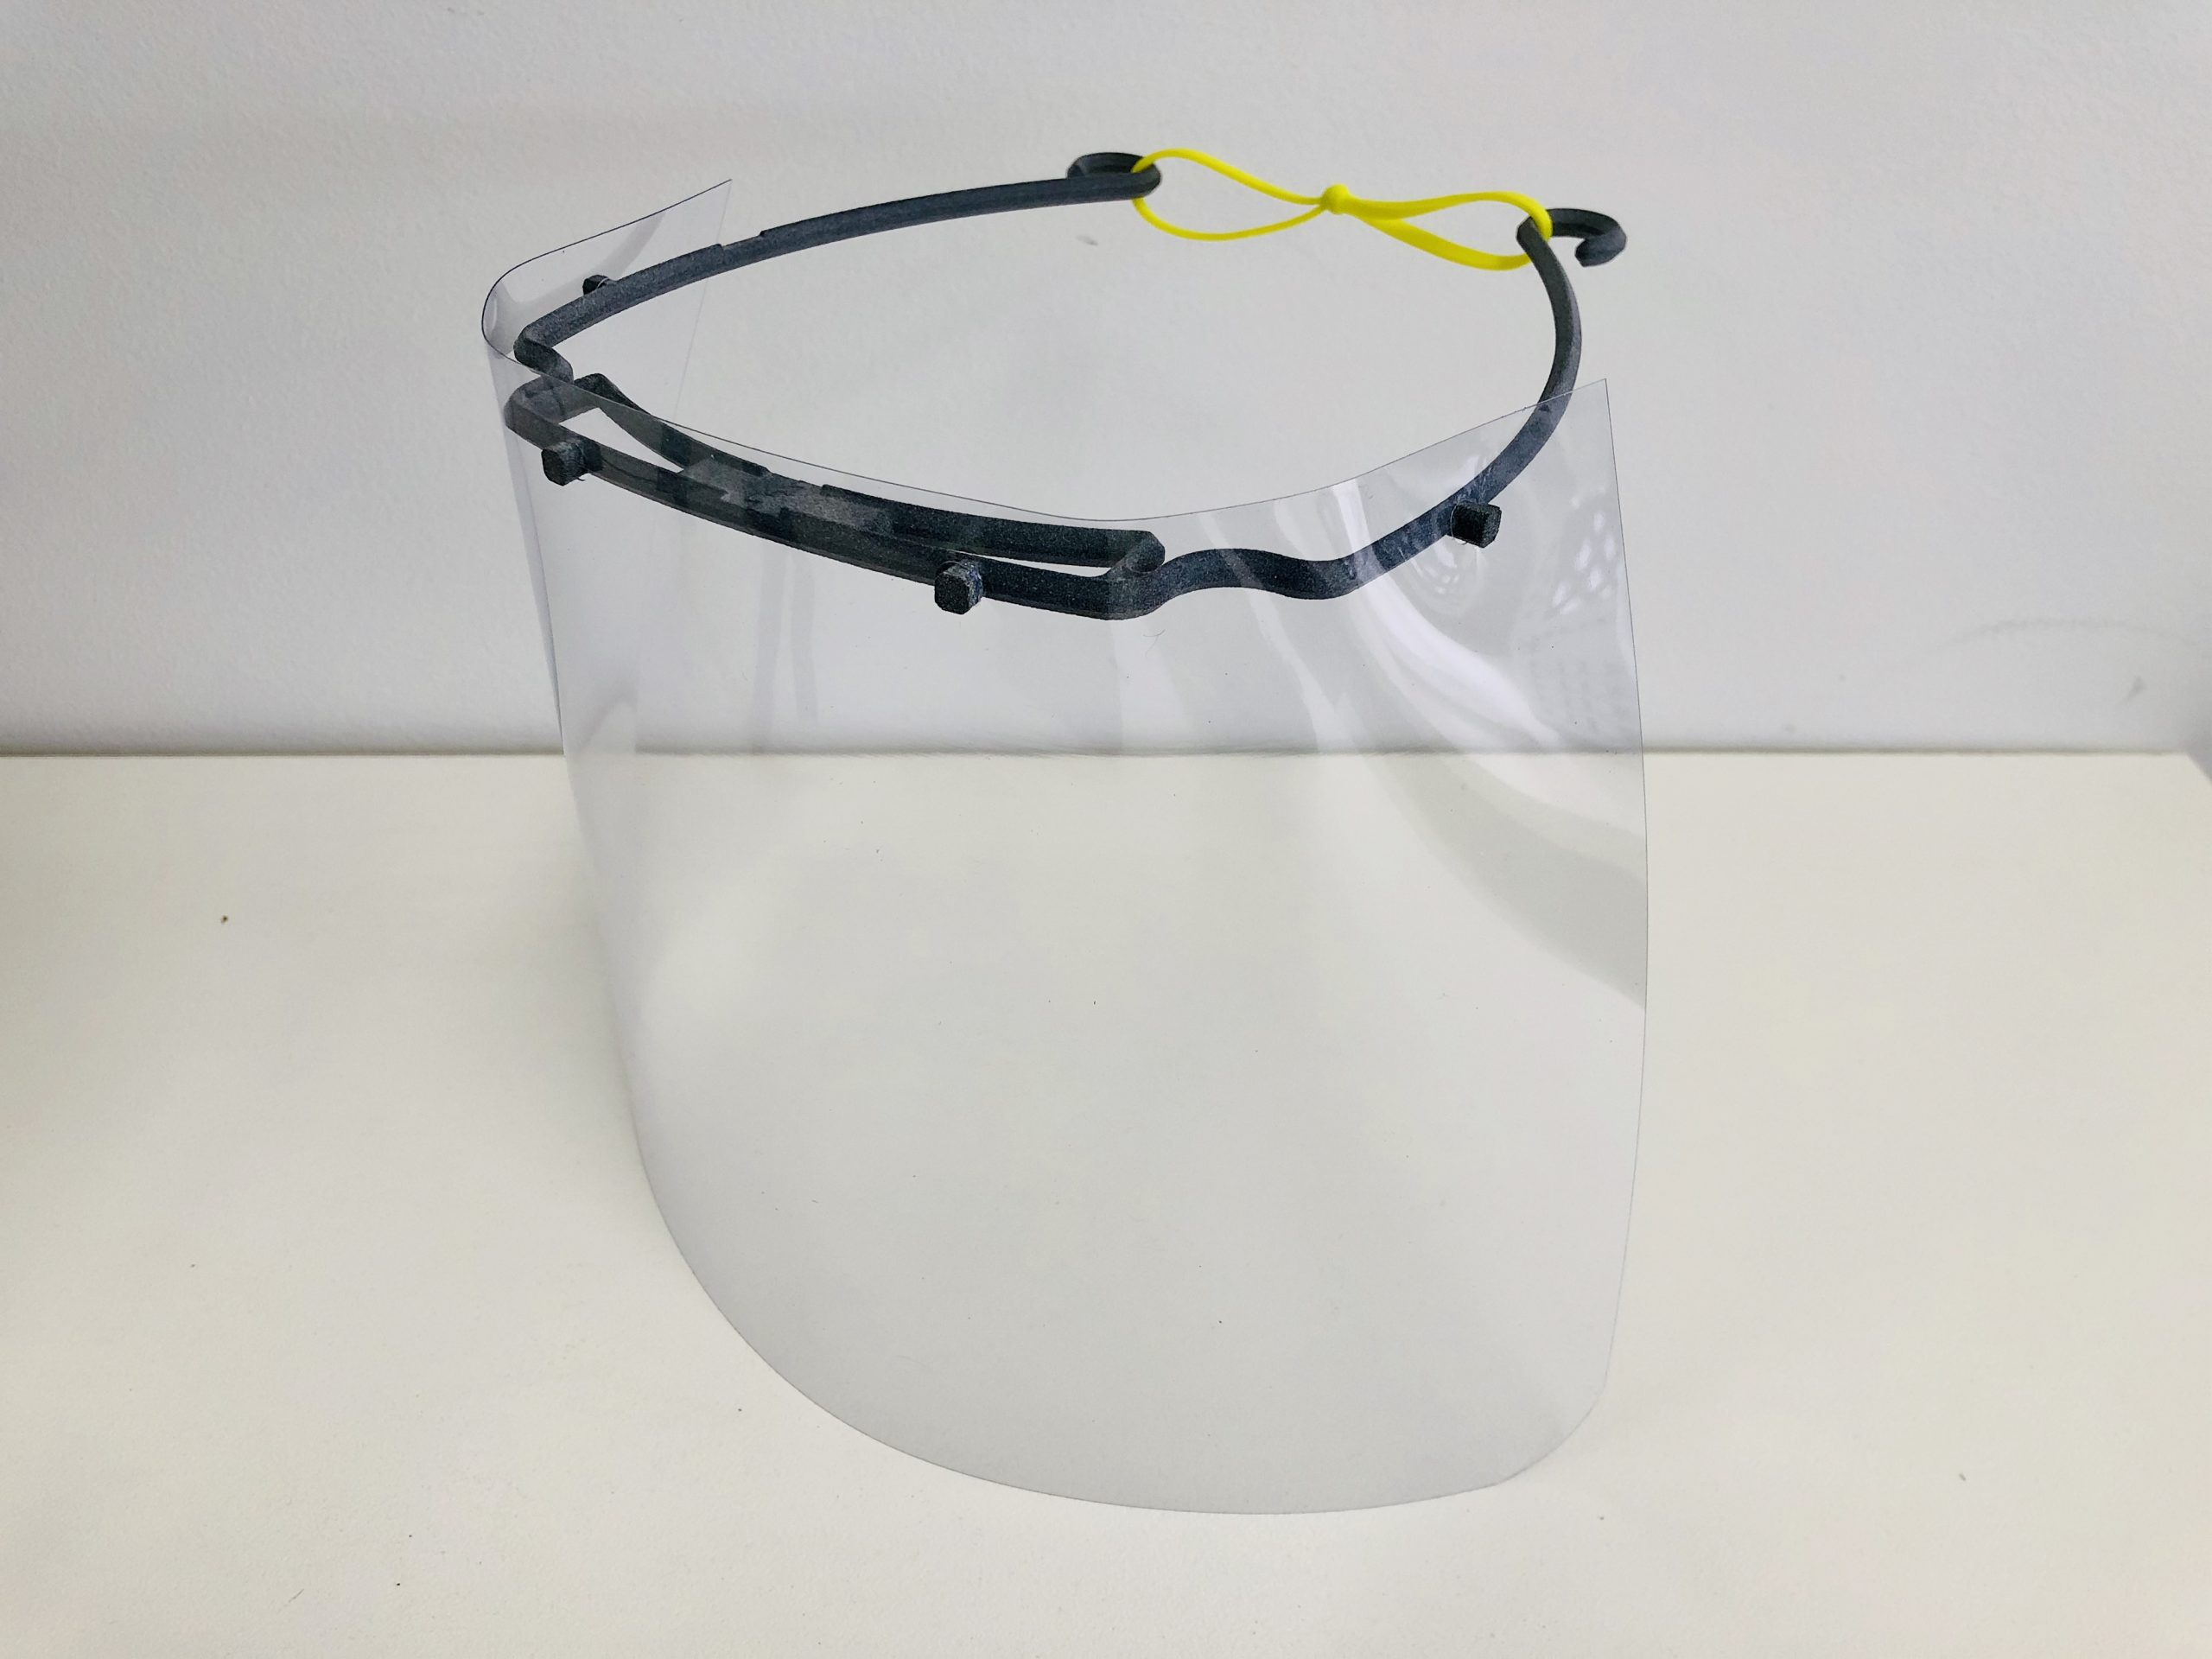 Face shield side view